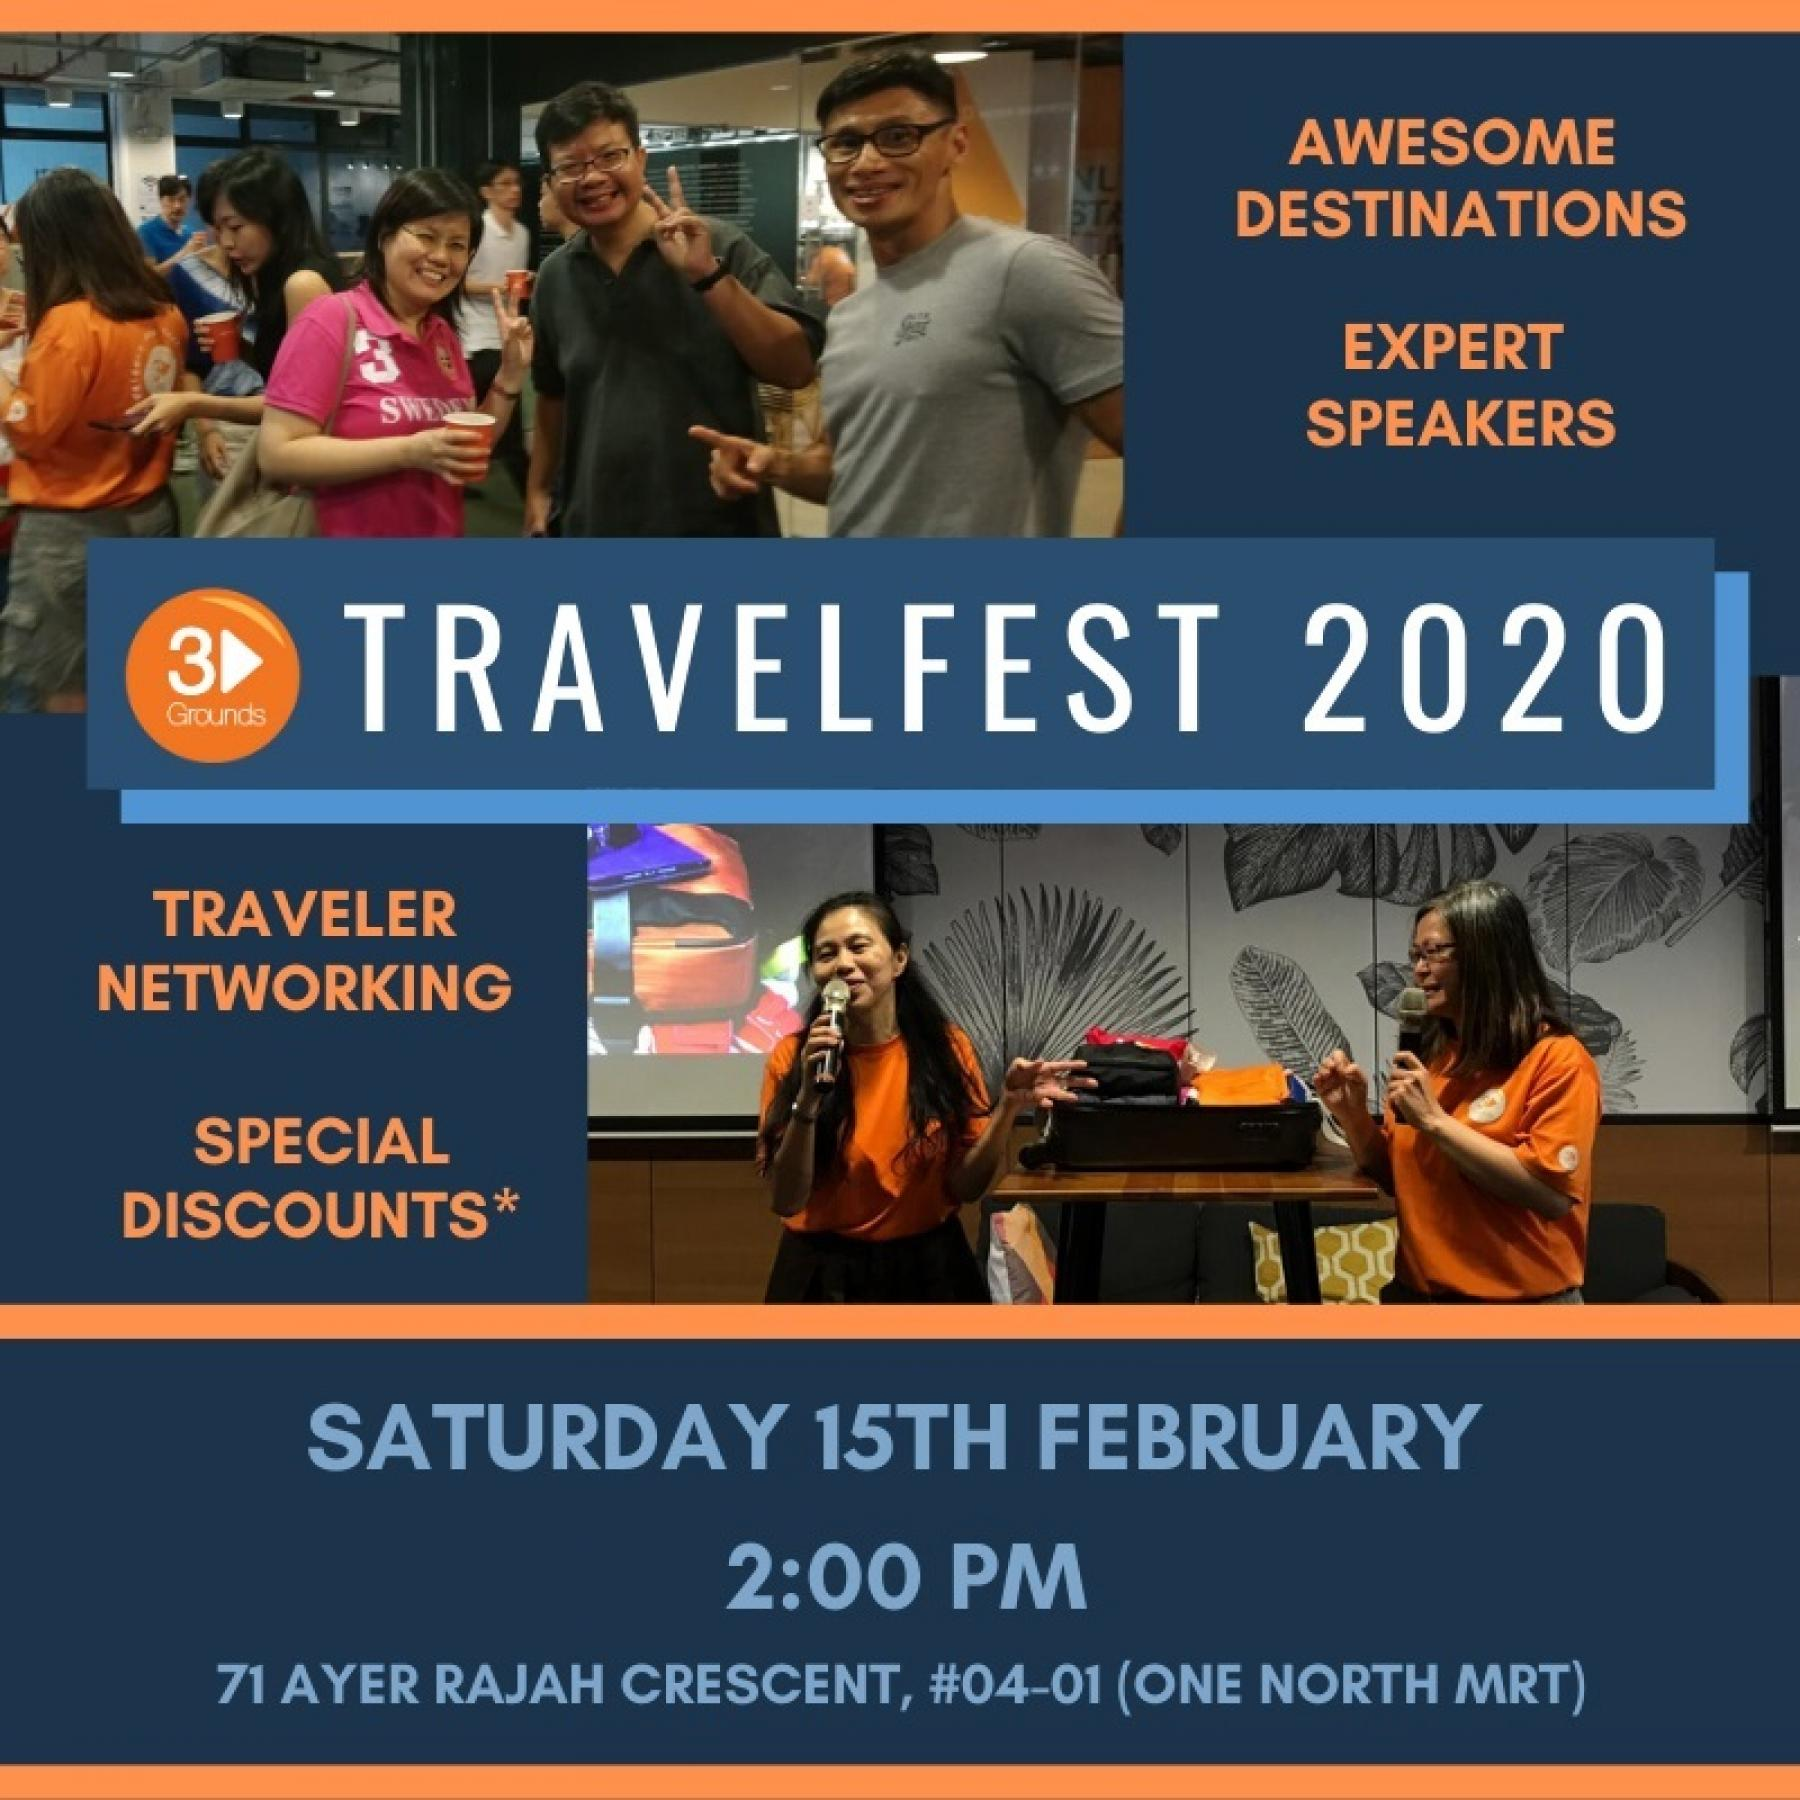 Seeking a New Adventure? Come to TravelFest 2020 - EVENT POSTPONED starting at Singapore